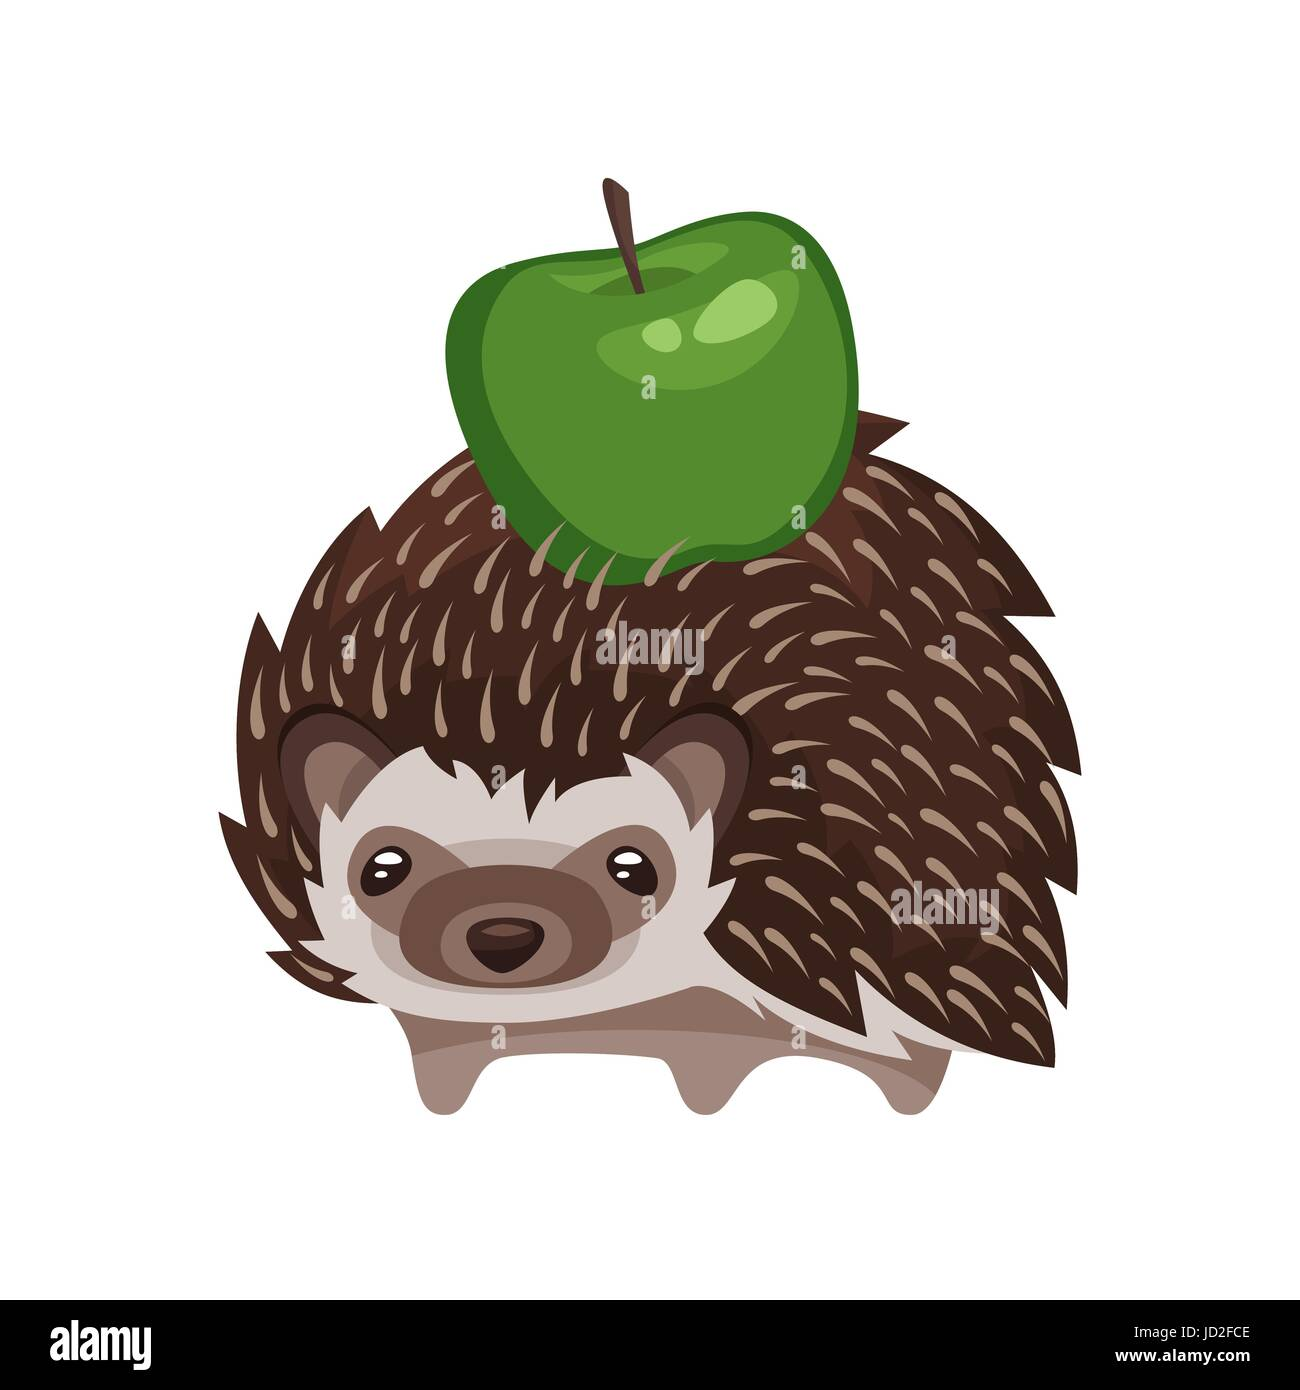 Vector cartoon style illustration of hedgehog with green apple. Icon for web. Isolated on white background. - Stock Image